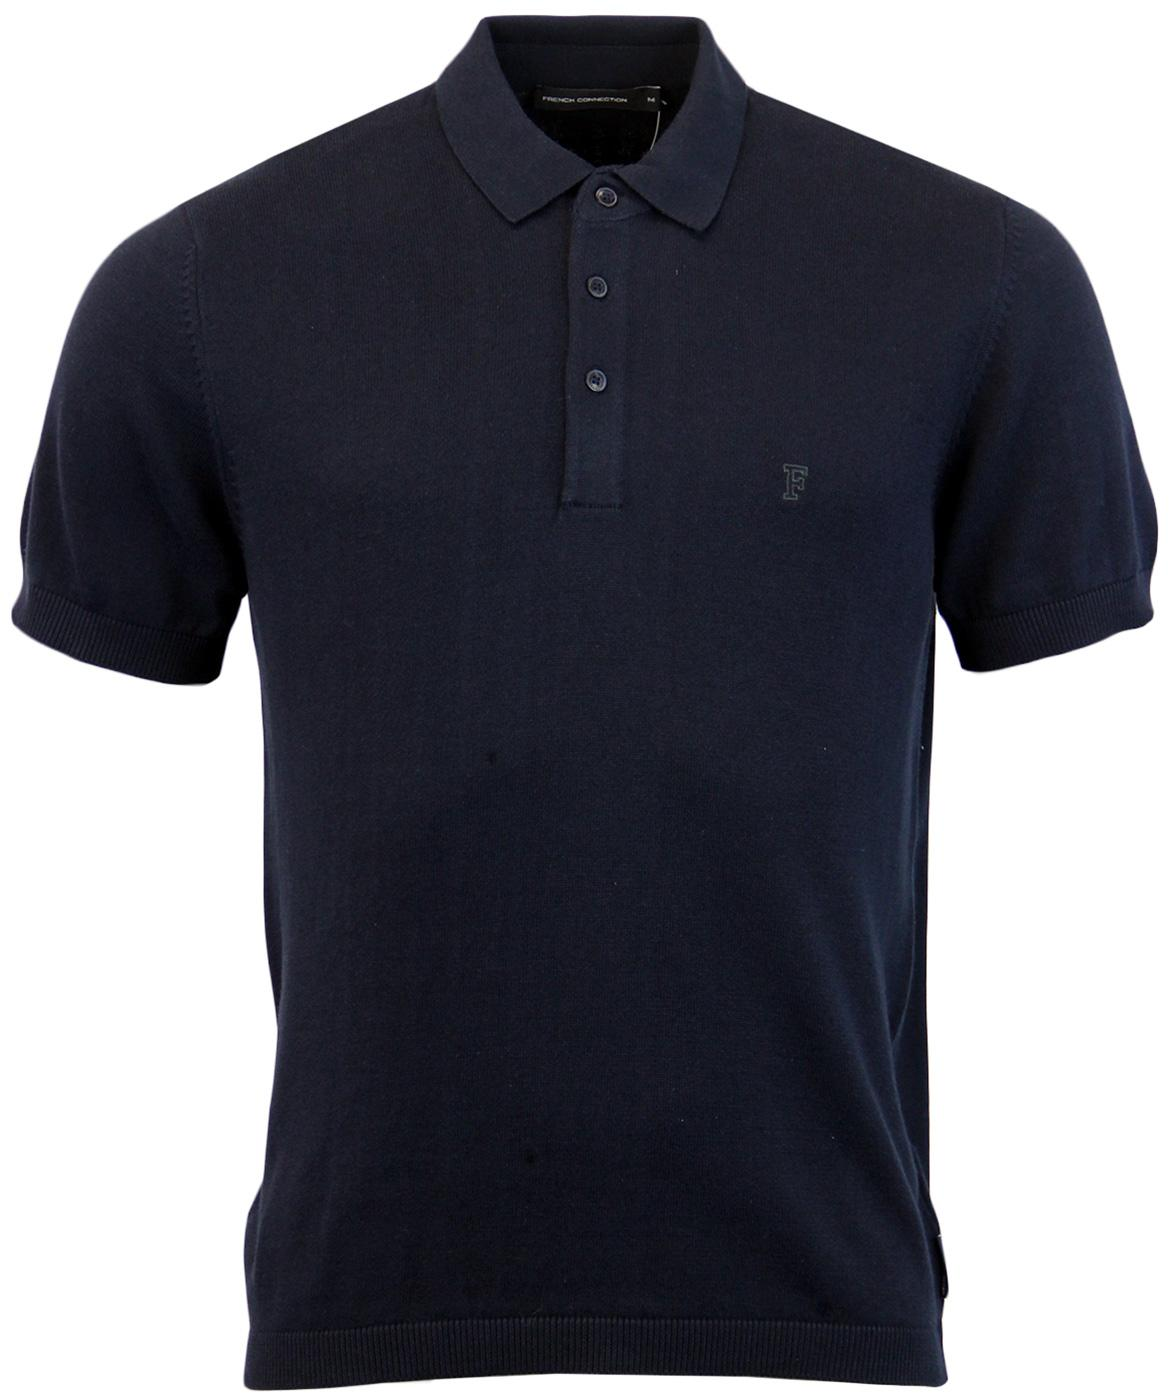 FRENCH CONNECTION Retro Mod Cotton Knitted Polo